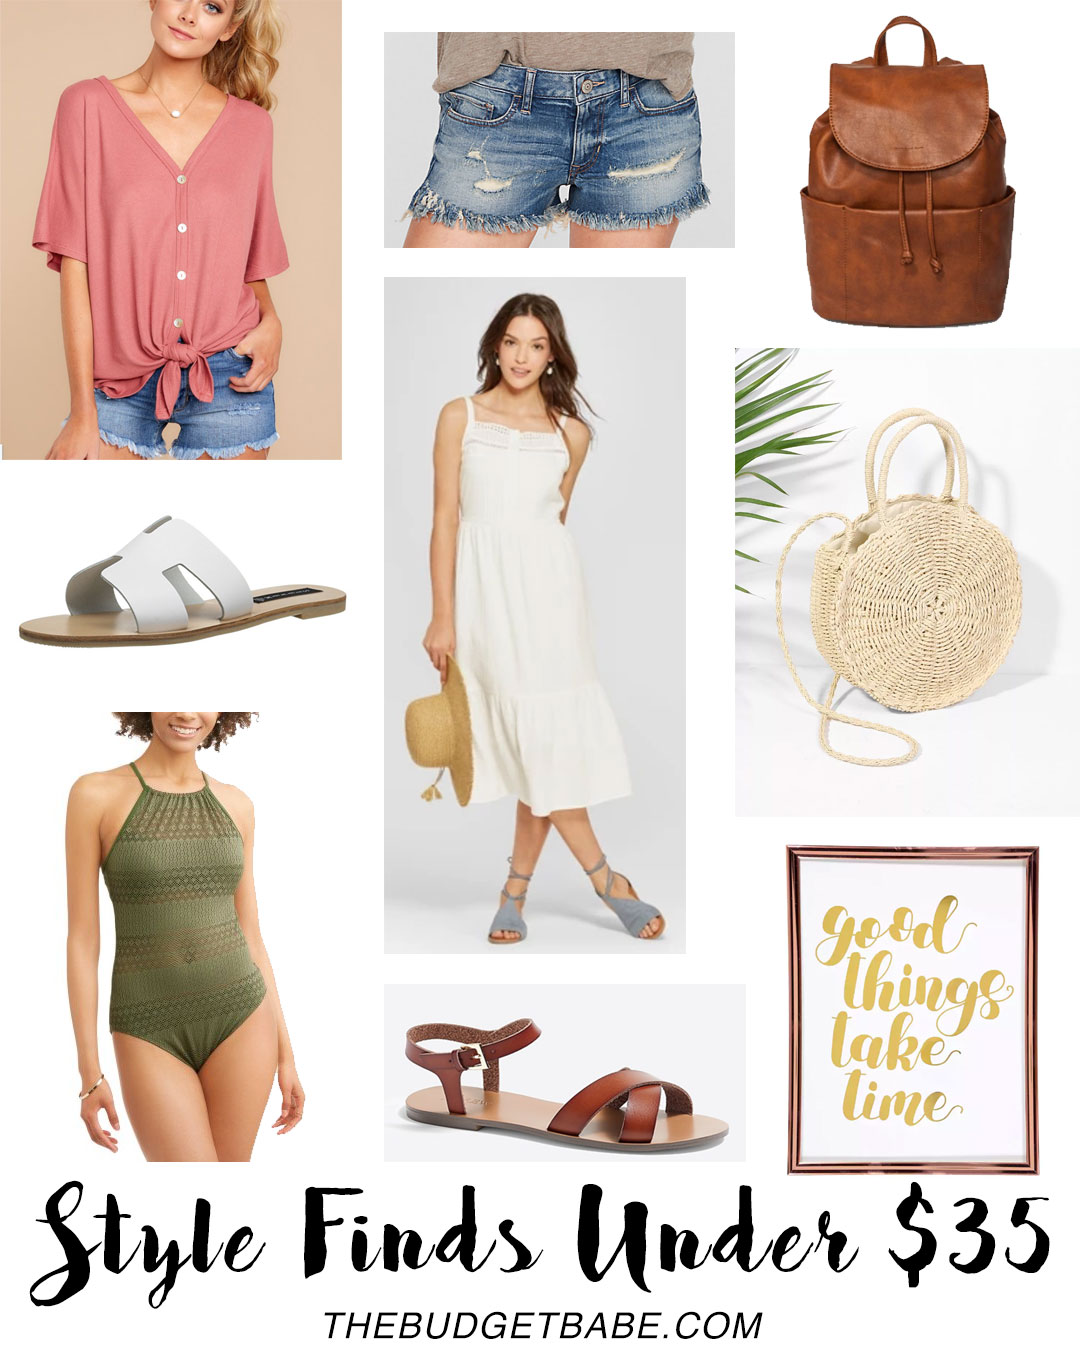 Style Finds Under $35 on The Budget Babe fashion blog